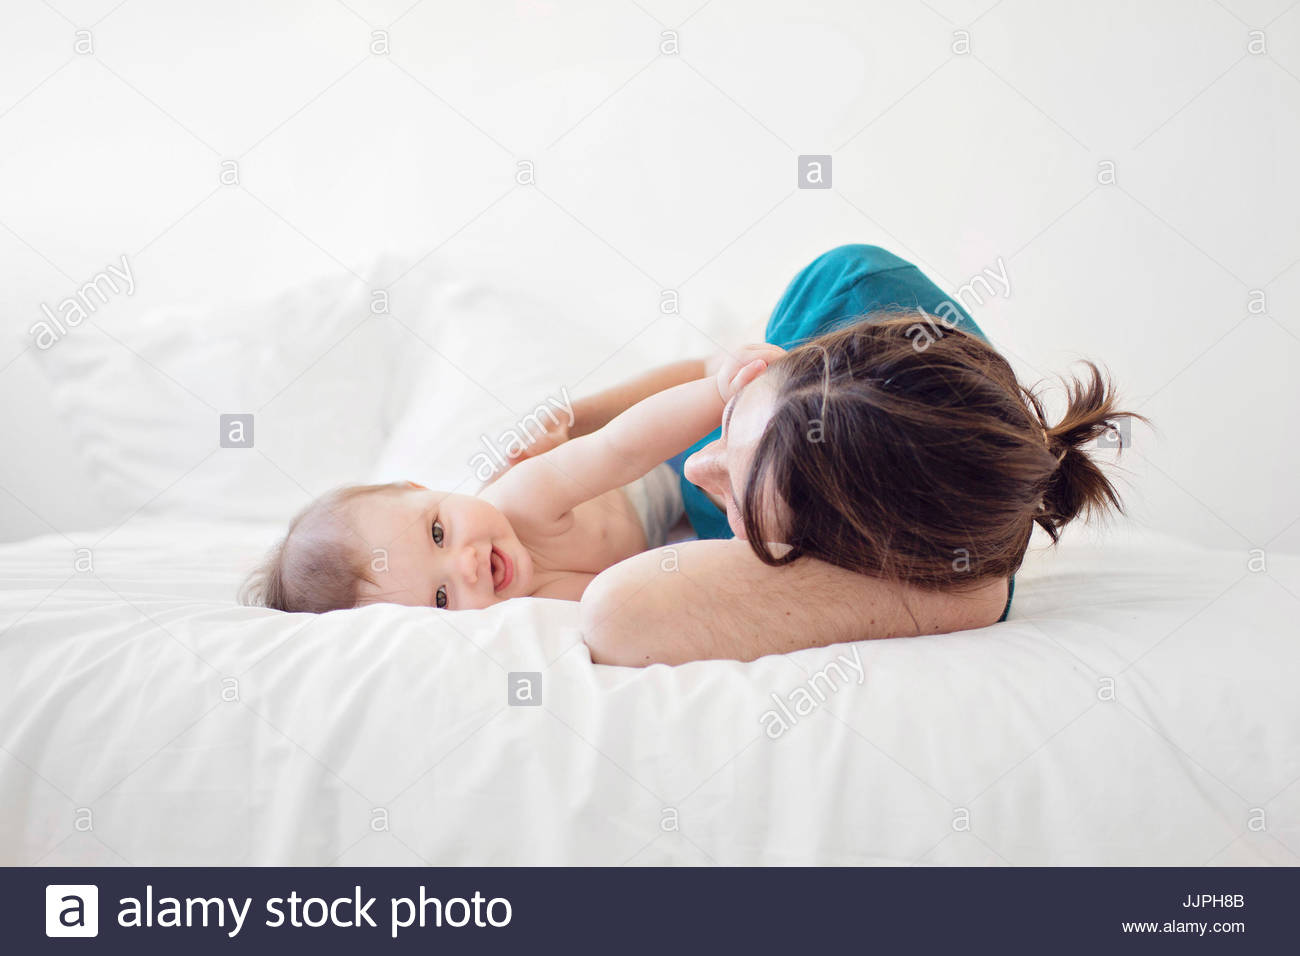 Woman wearing blue top and baby girl lying on a bed, smiling at camera. - Stock Image